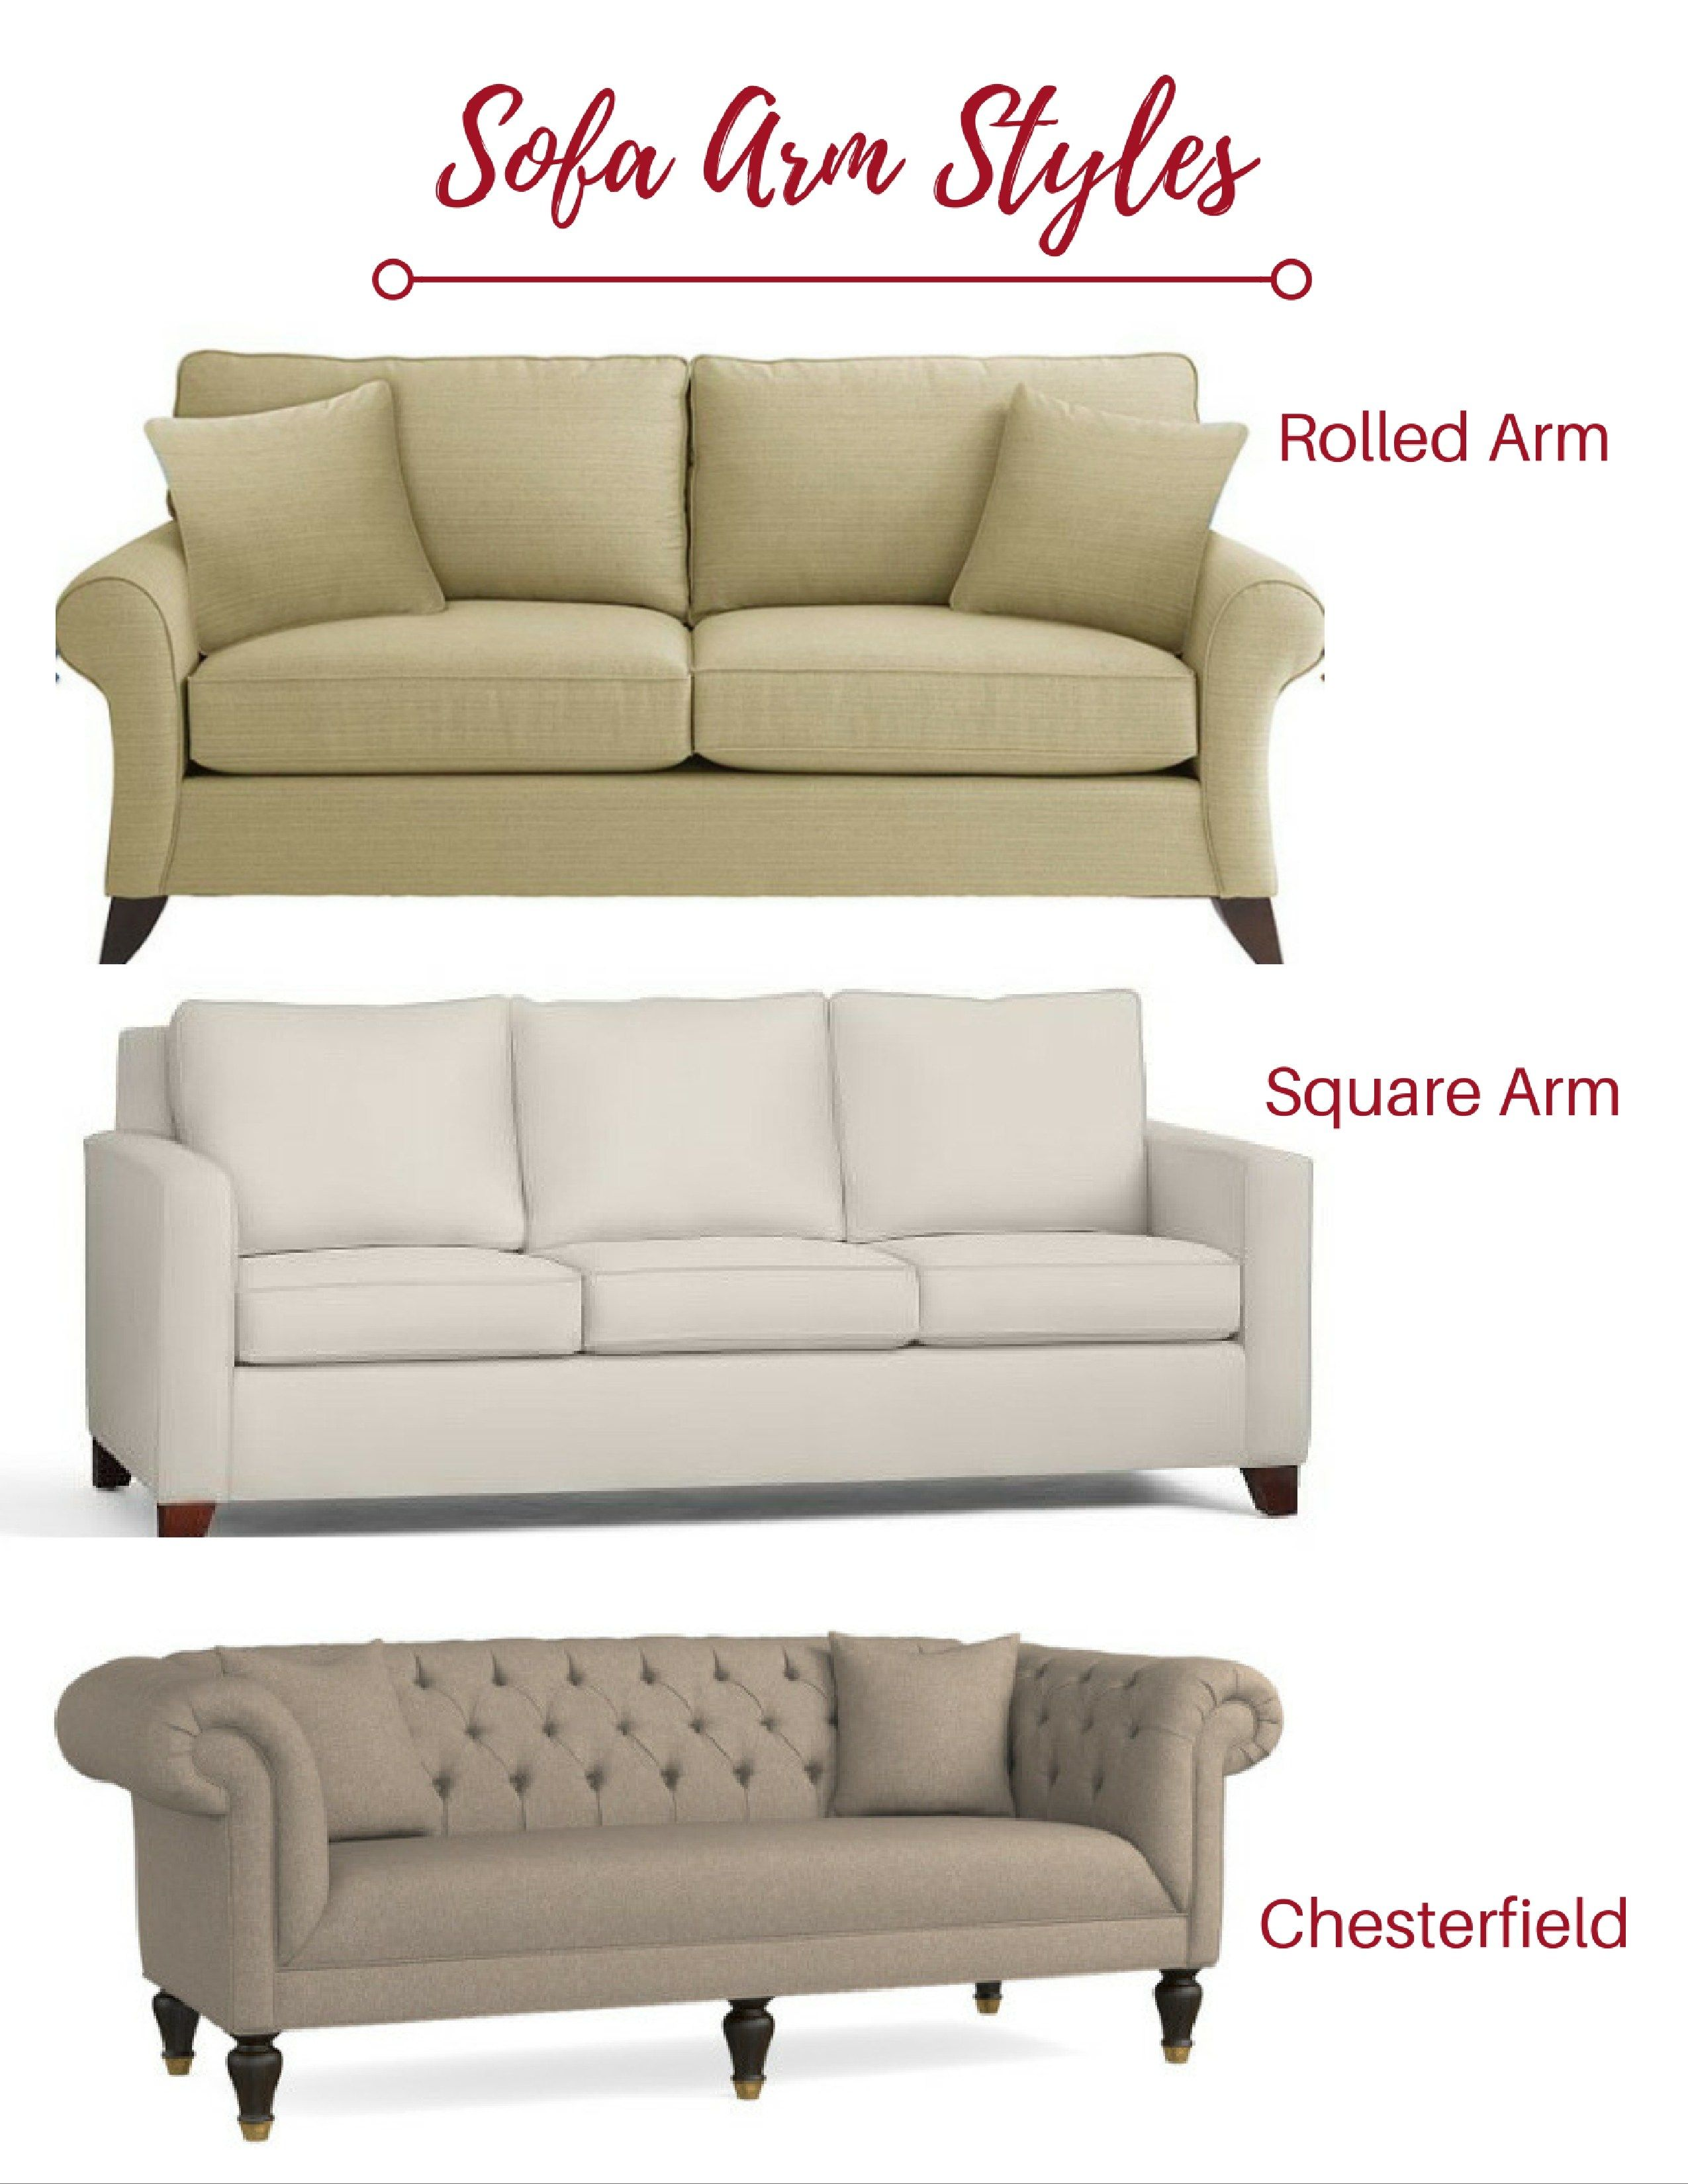 Sofa Arm Styles Best Collections Of Sofas And Couches